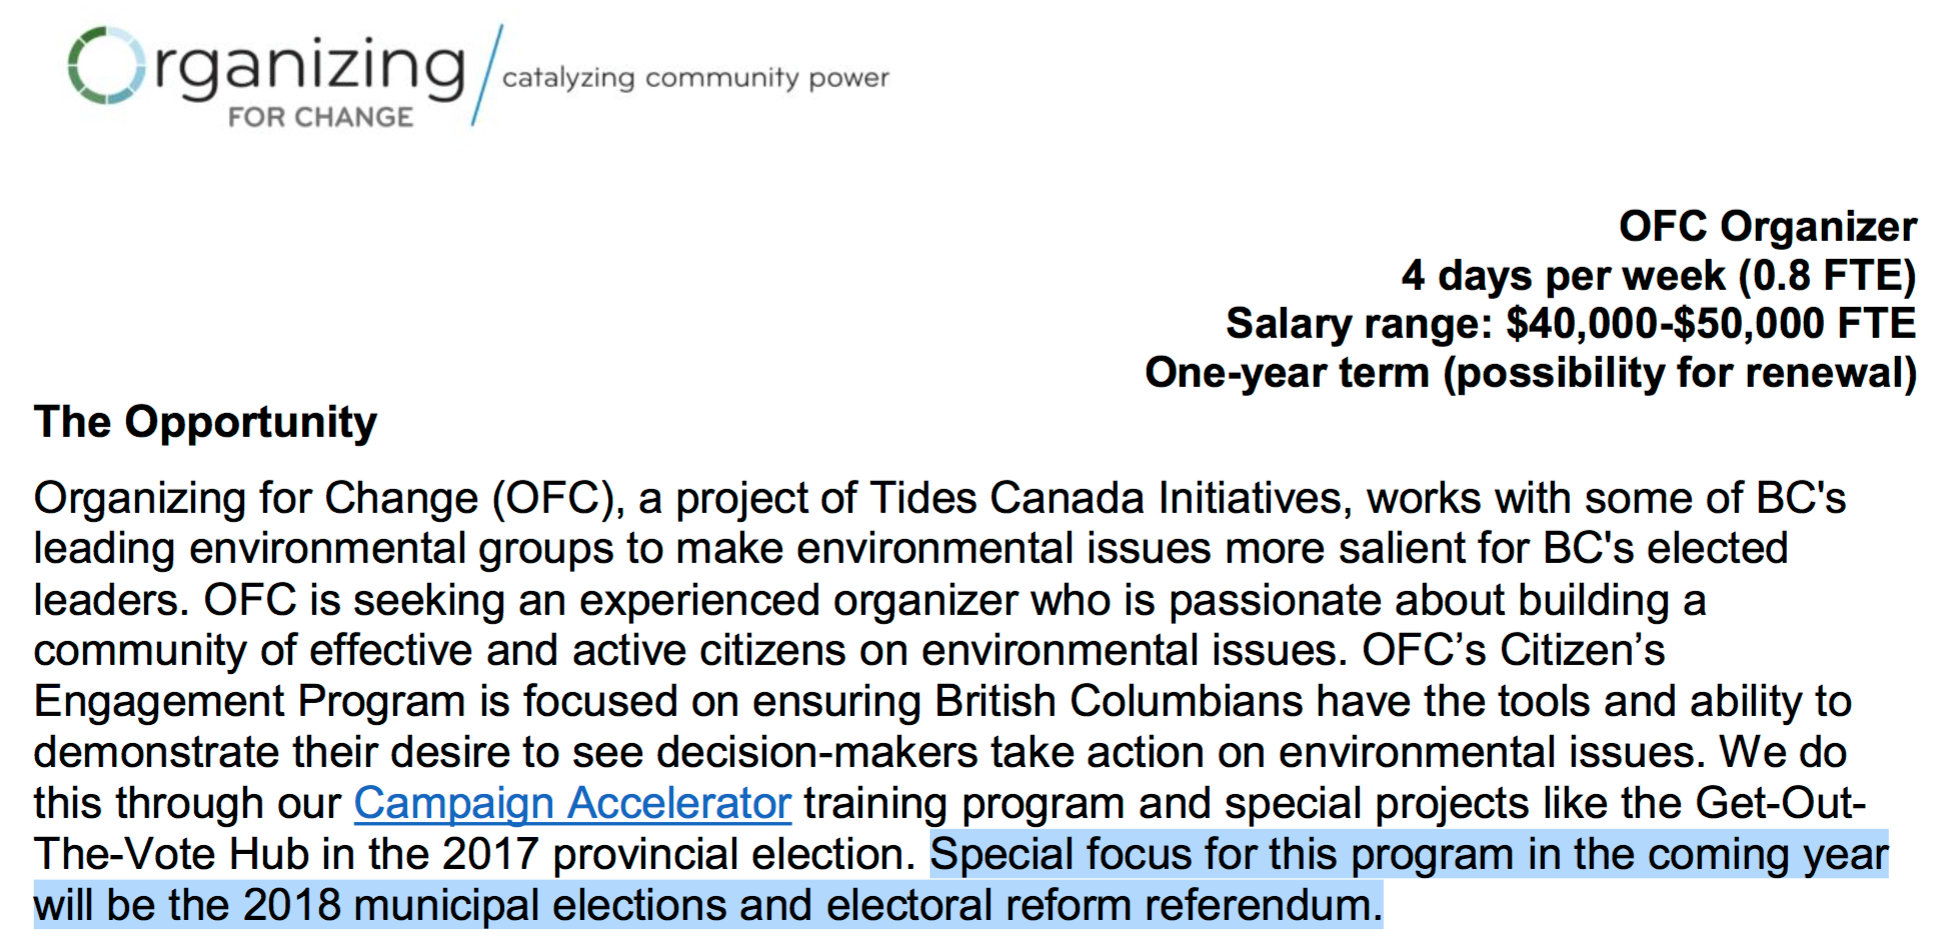 Rethink campaigns in vancouver it isnt even clear yet who the mayoral candidates will be and yet tides canada is already hiring staff for elections activism nvjuhfo Images